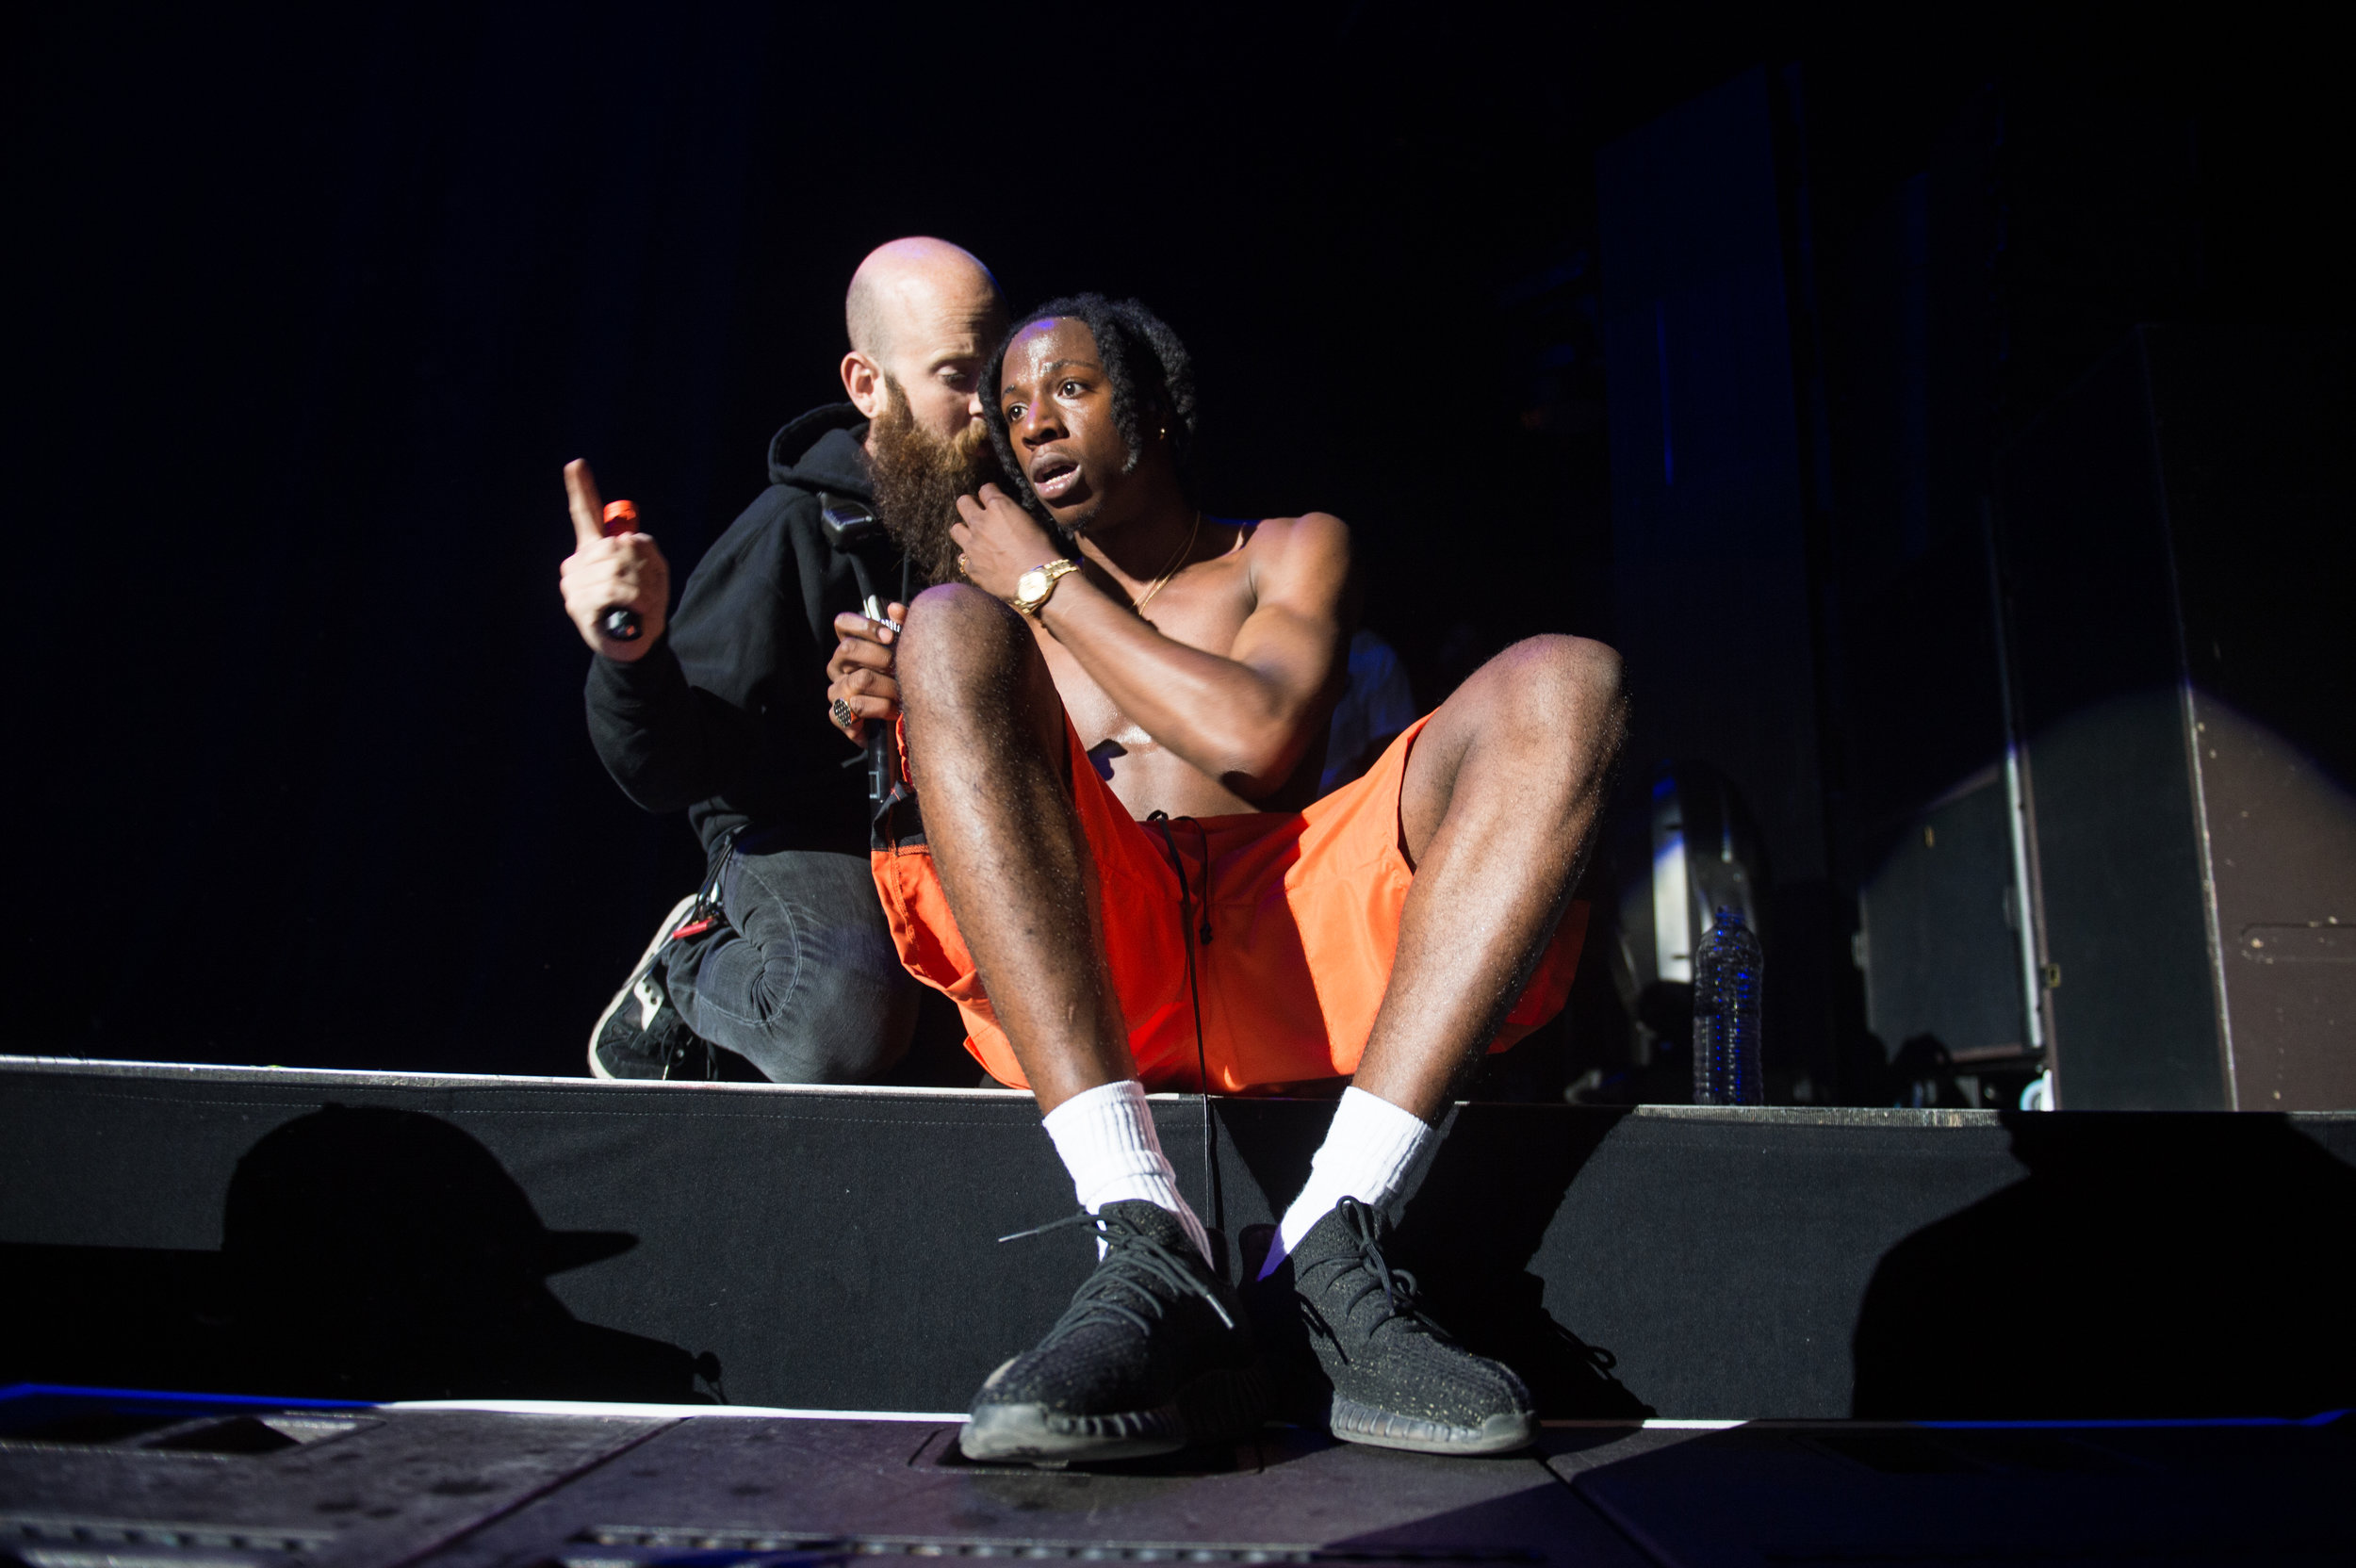 This was the moment, Momberg told Joey to stop his show because fans were trapped on the floor from intense mosh pits